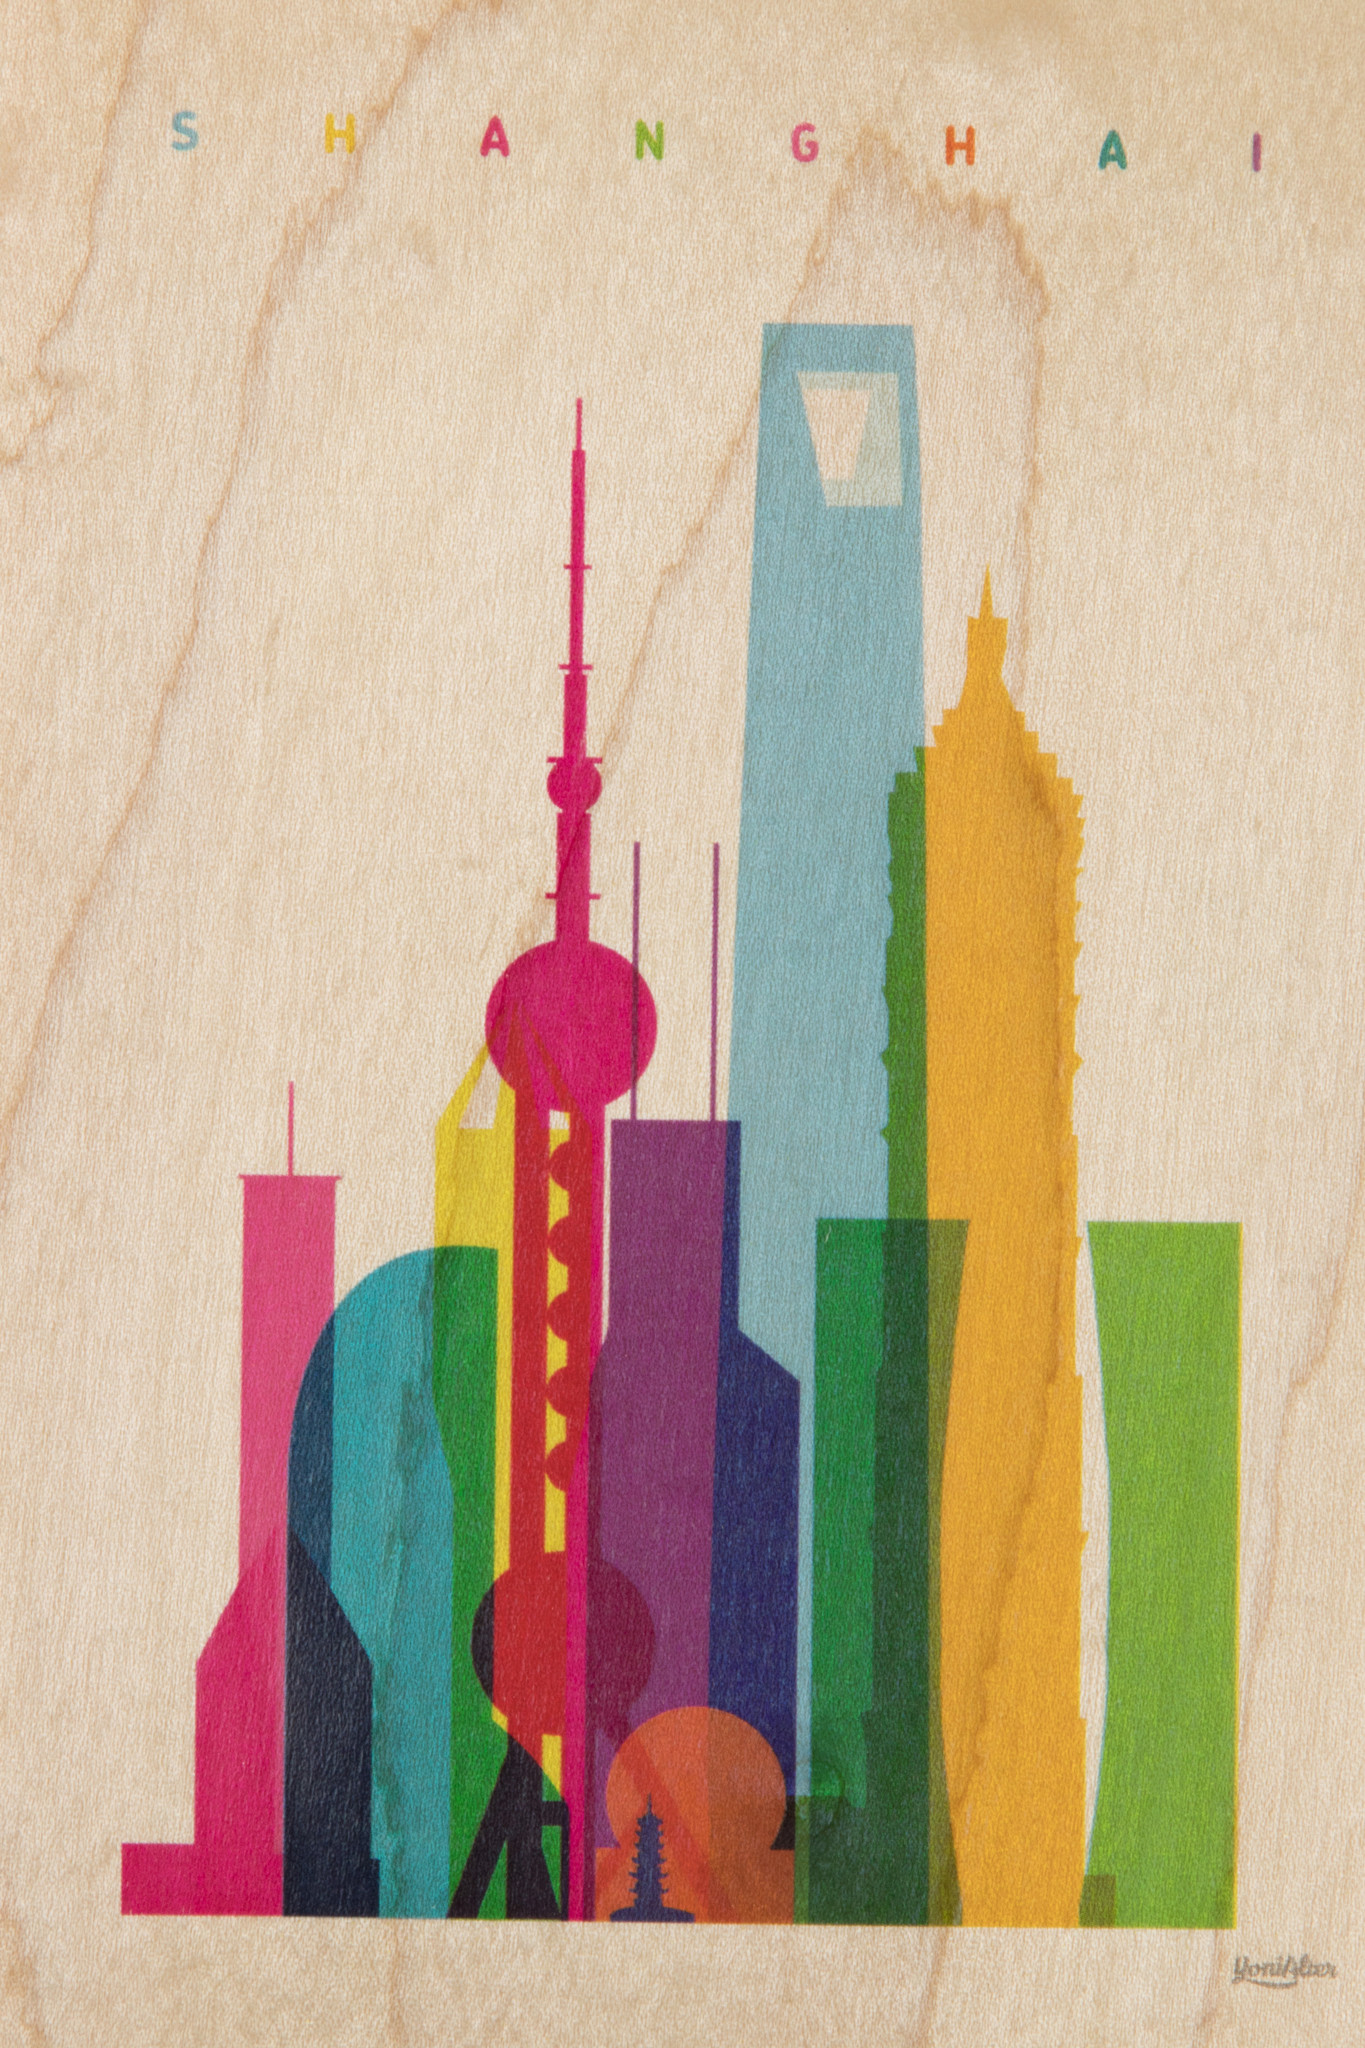 WOODHI postcard made of wood - Shanghai